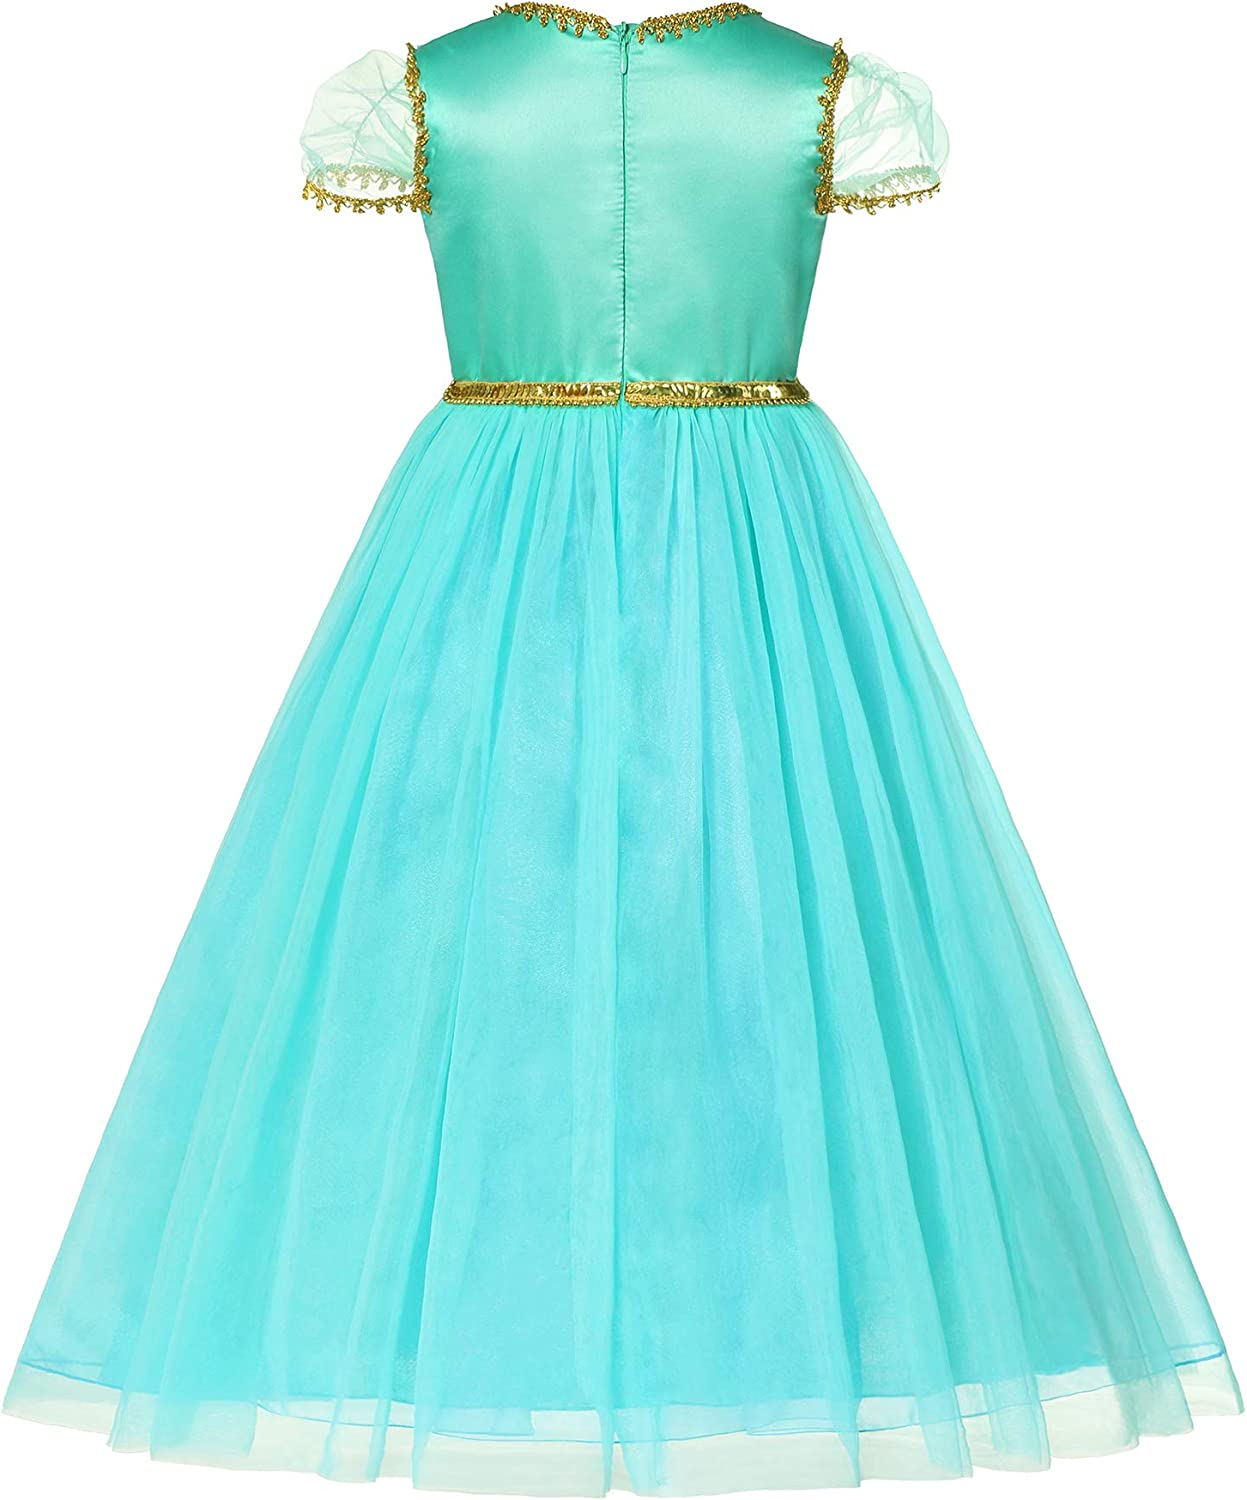 Little Girls Princess Dress Up Halloween Costume Dresses for Cosplay Party